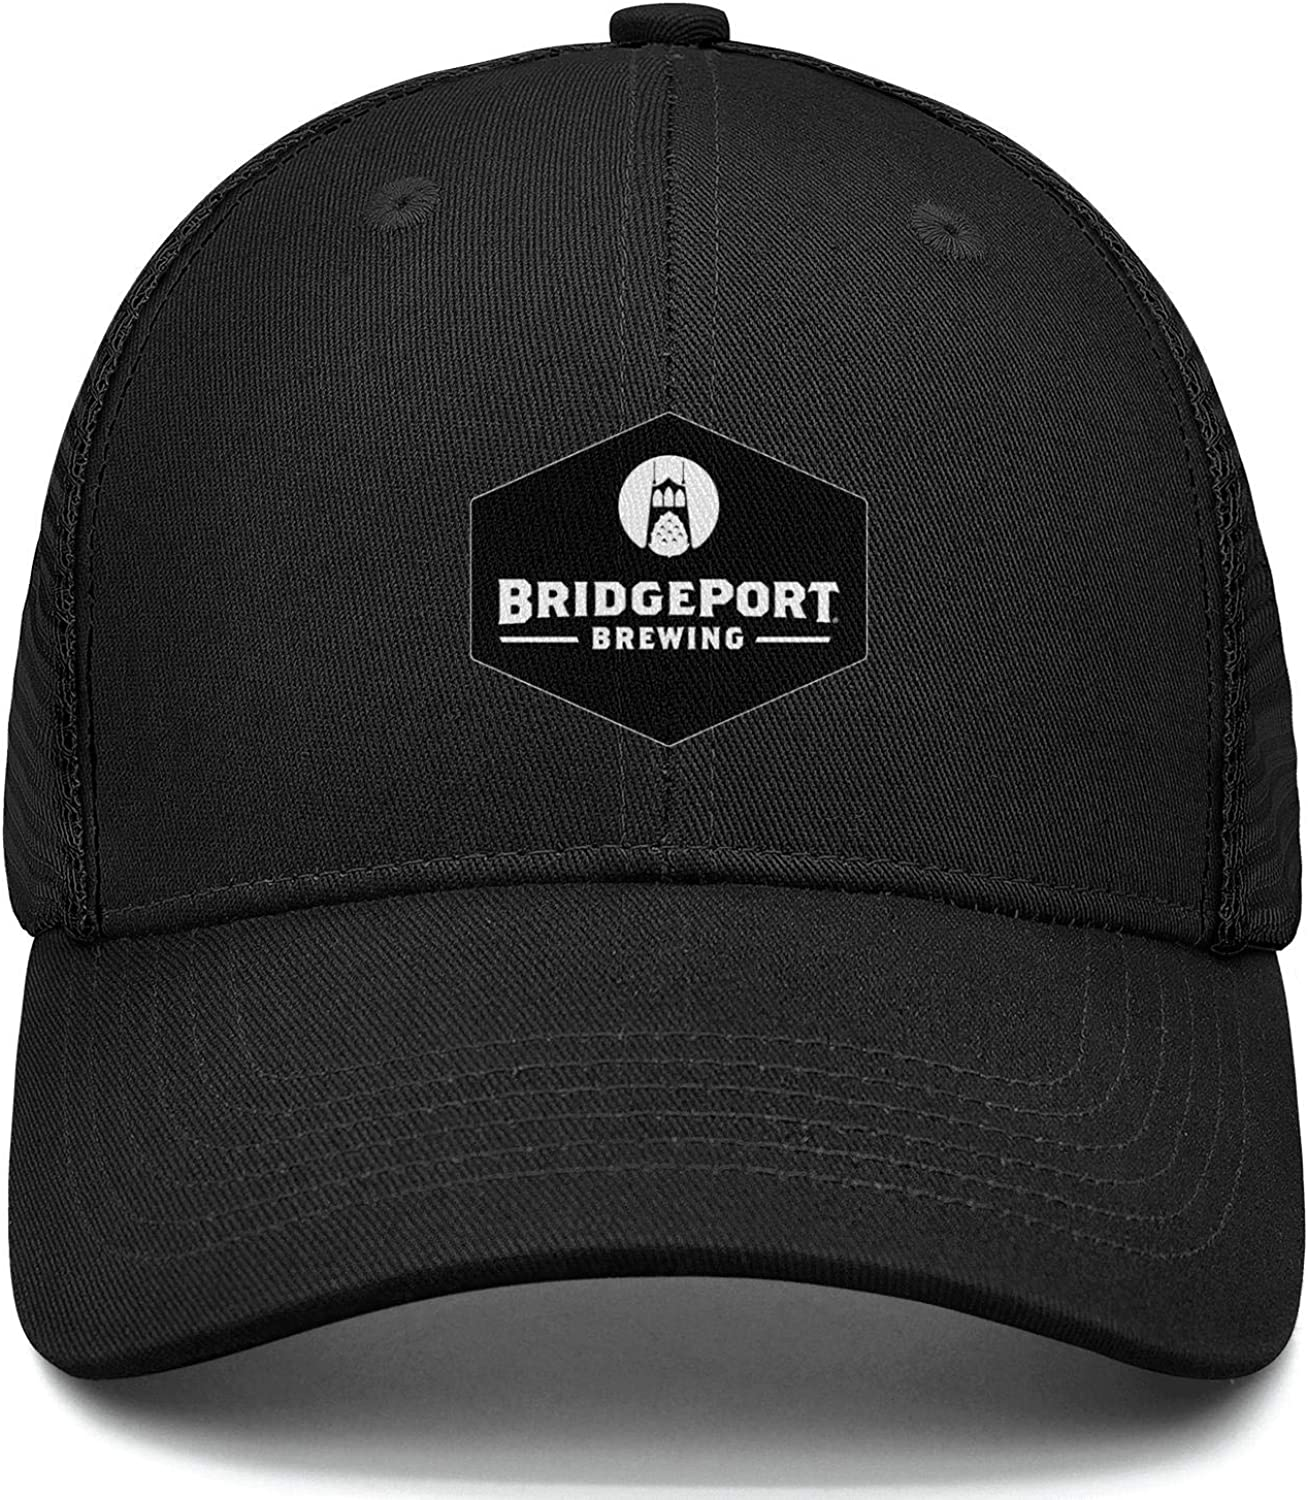 LZJDY Bridgeport Brewery Black Strap Women Mens Mesh Cool Cap Adjustable Snapback Sports Hat